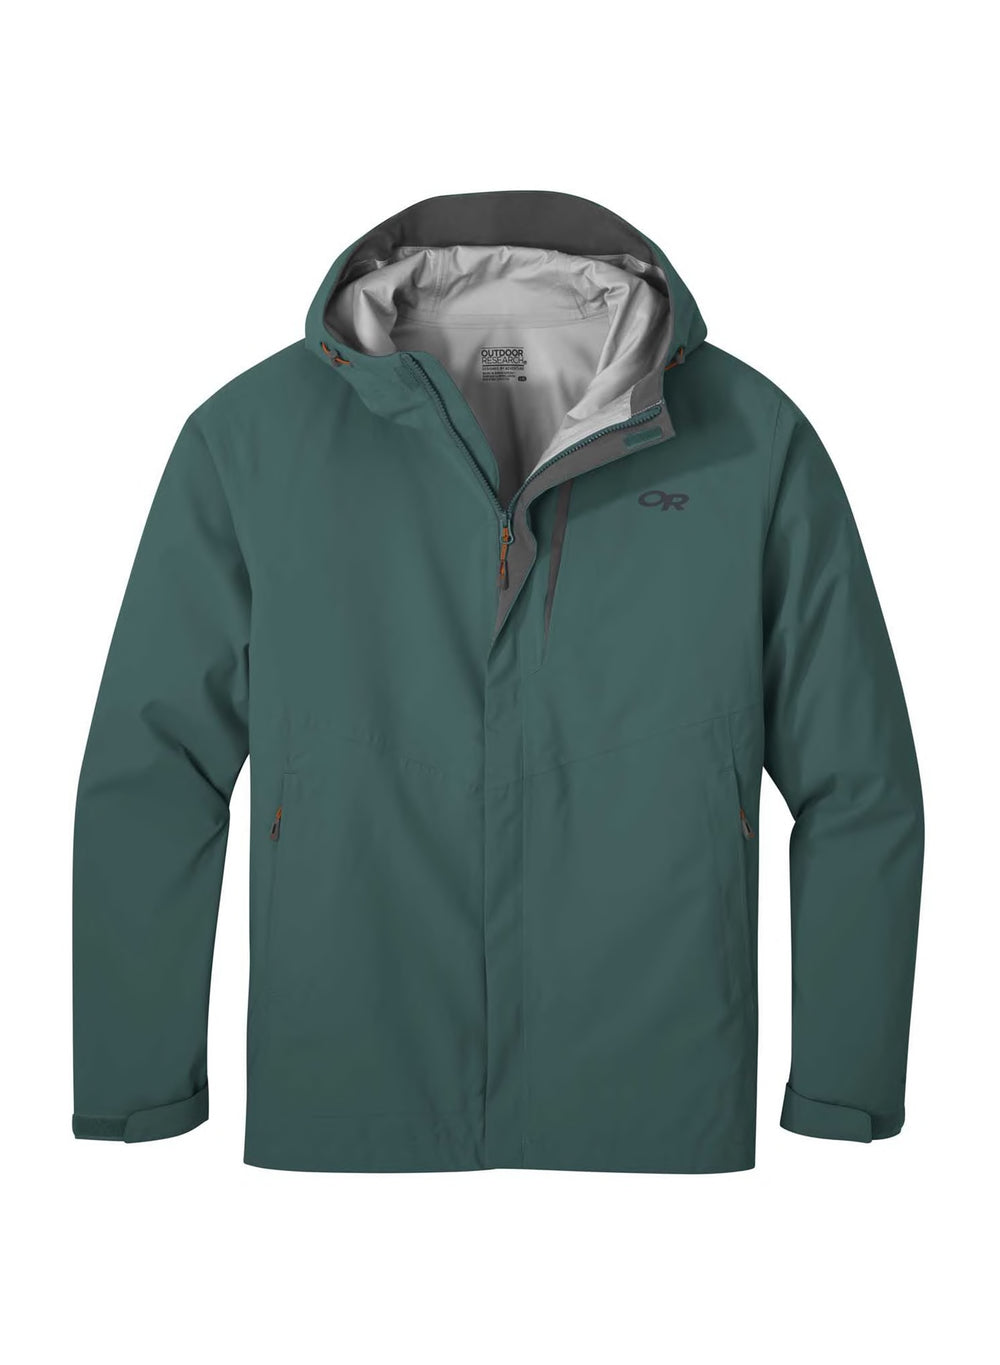 Outdoor Research Guardian II AscentShell - Men's